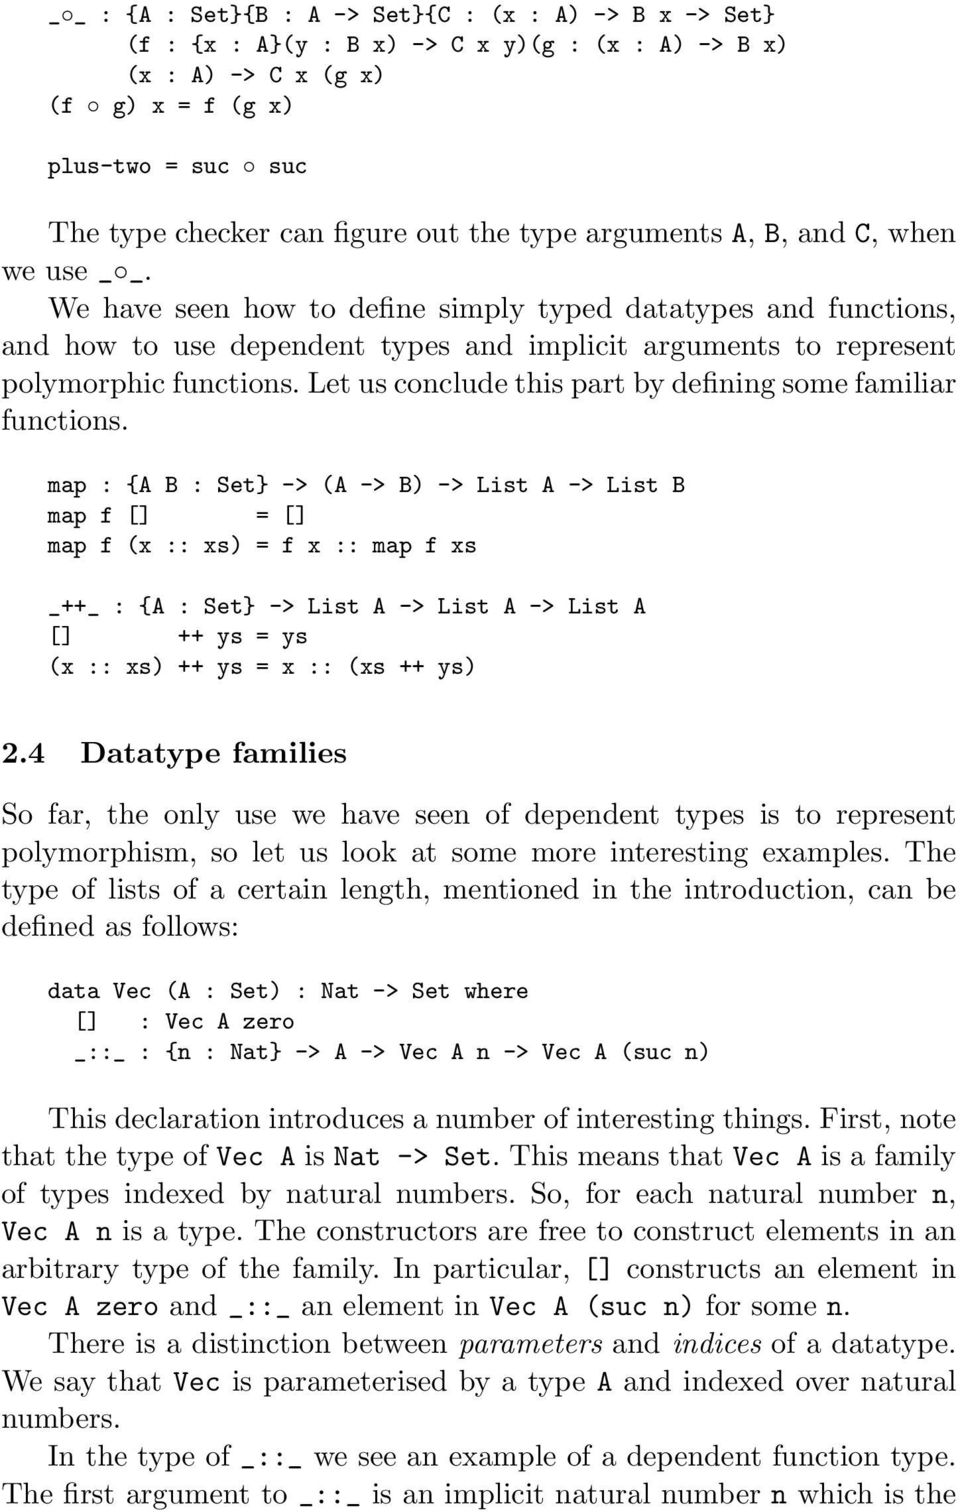 We have seen how to define simply typed datatypes and functions, and how to use dependent types and implicit arguments to represent polymorphic functions.